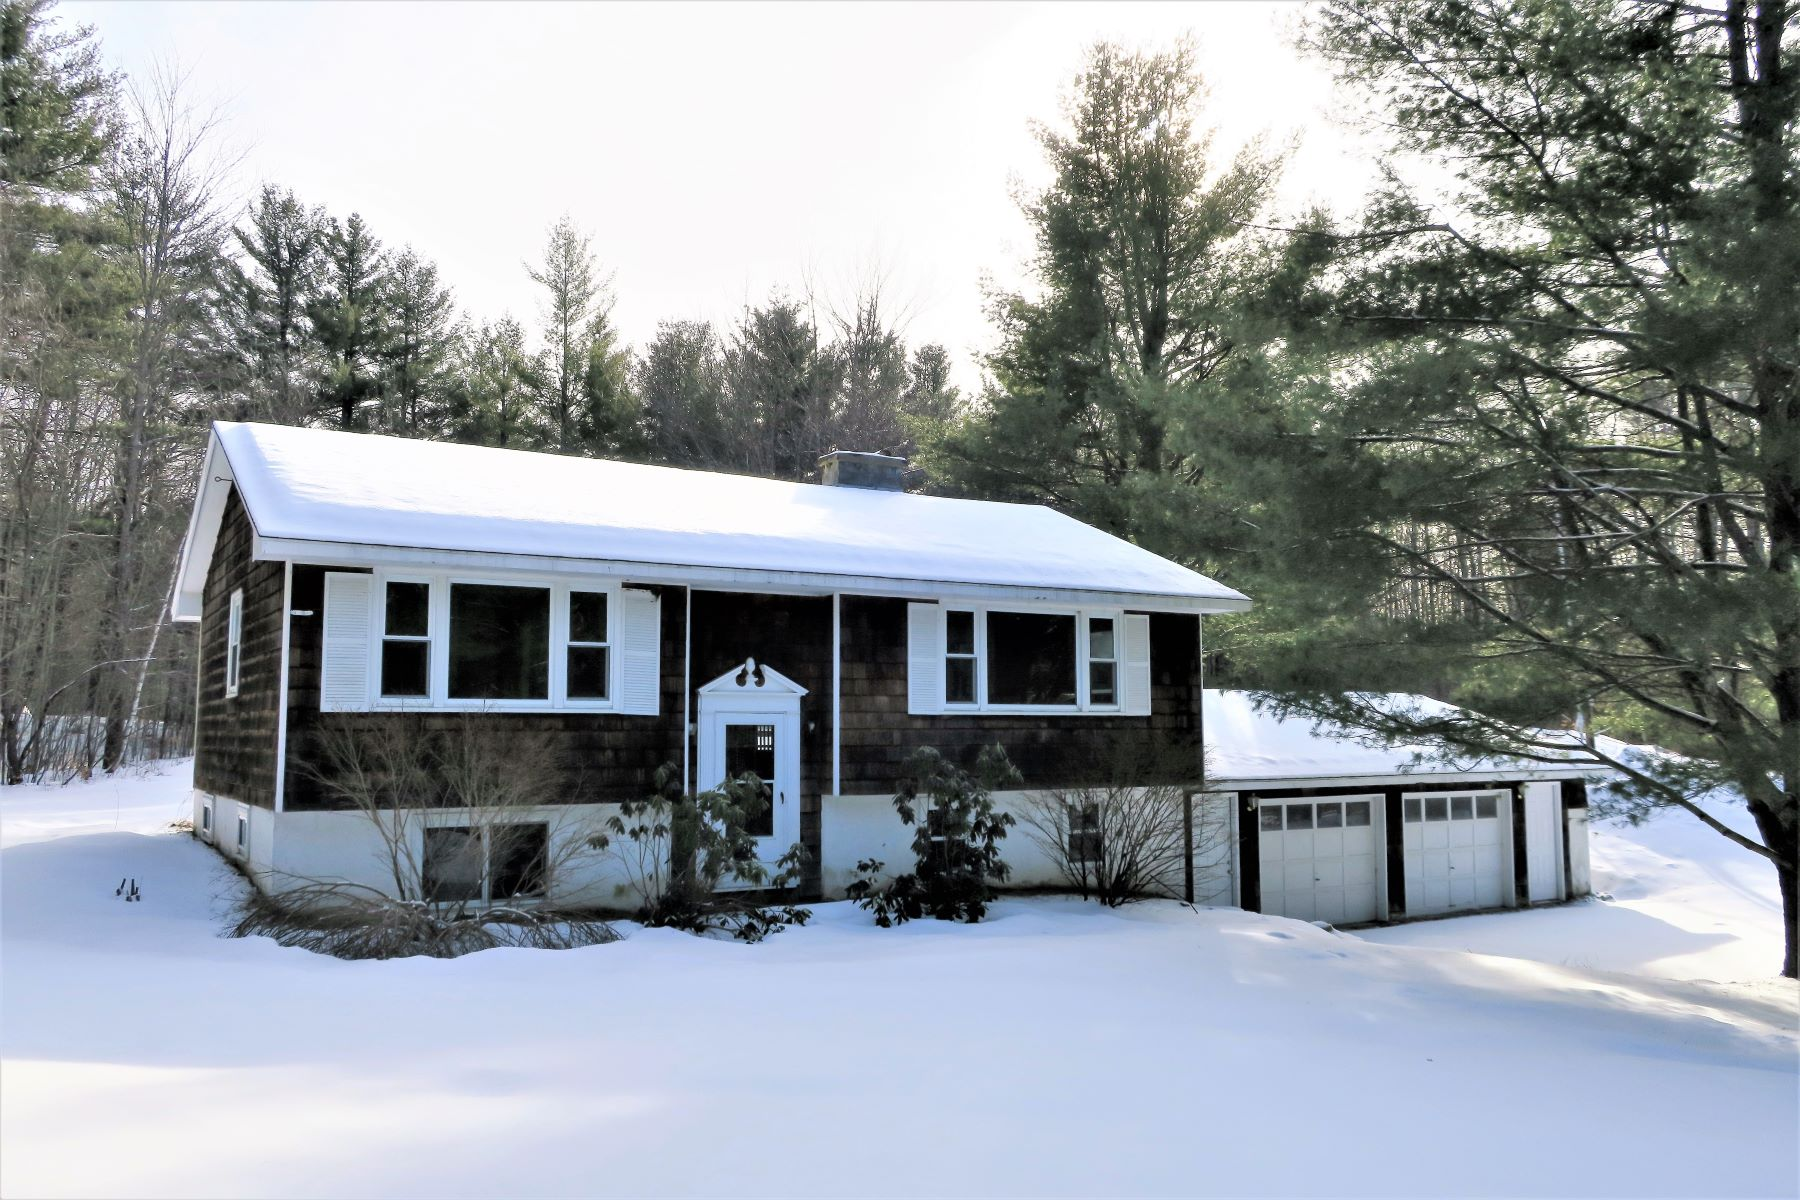 Single Family Homes for Sale at 7642 Vermont 30 Route, Jamaica 7642 Vermont 30 Route Jamaica, Vermont 05343 United States